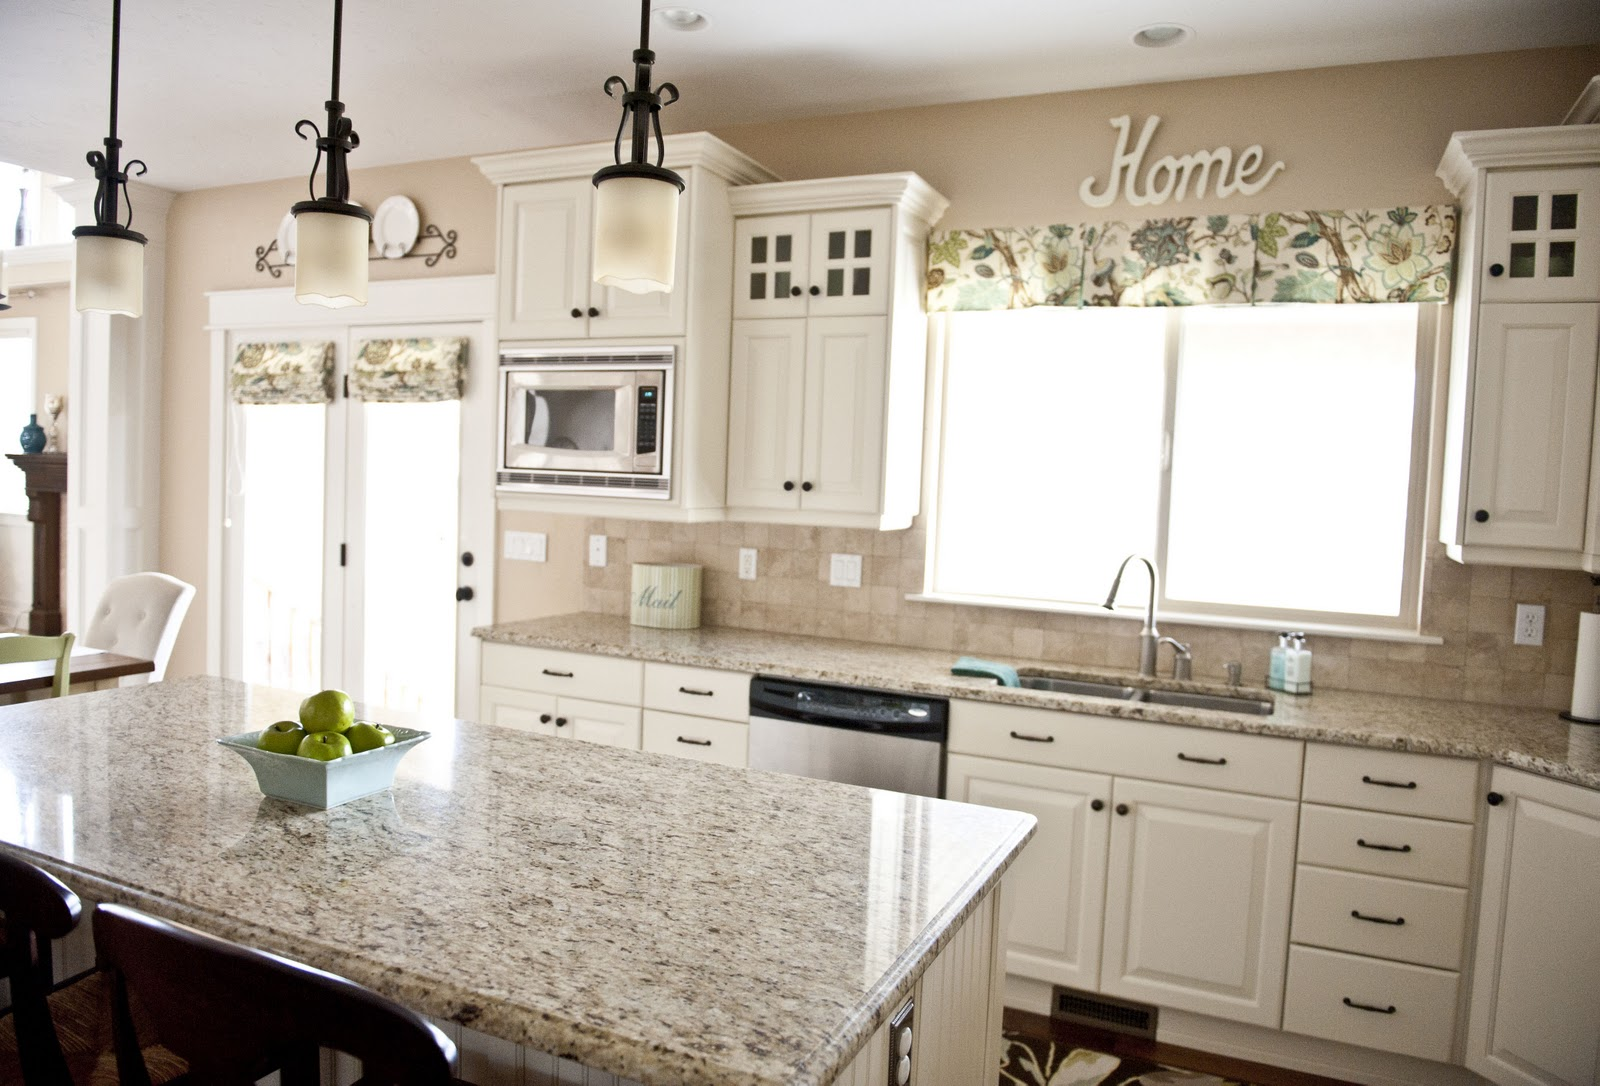 What Color Countertops Go With White Cabinets Sita Montgomery Interiors My Home Tour Kitchen